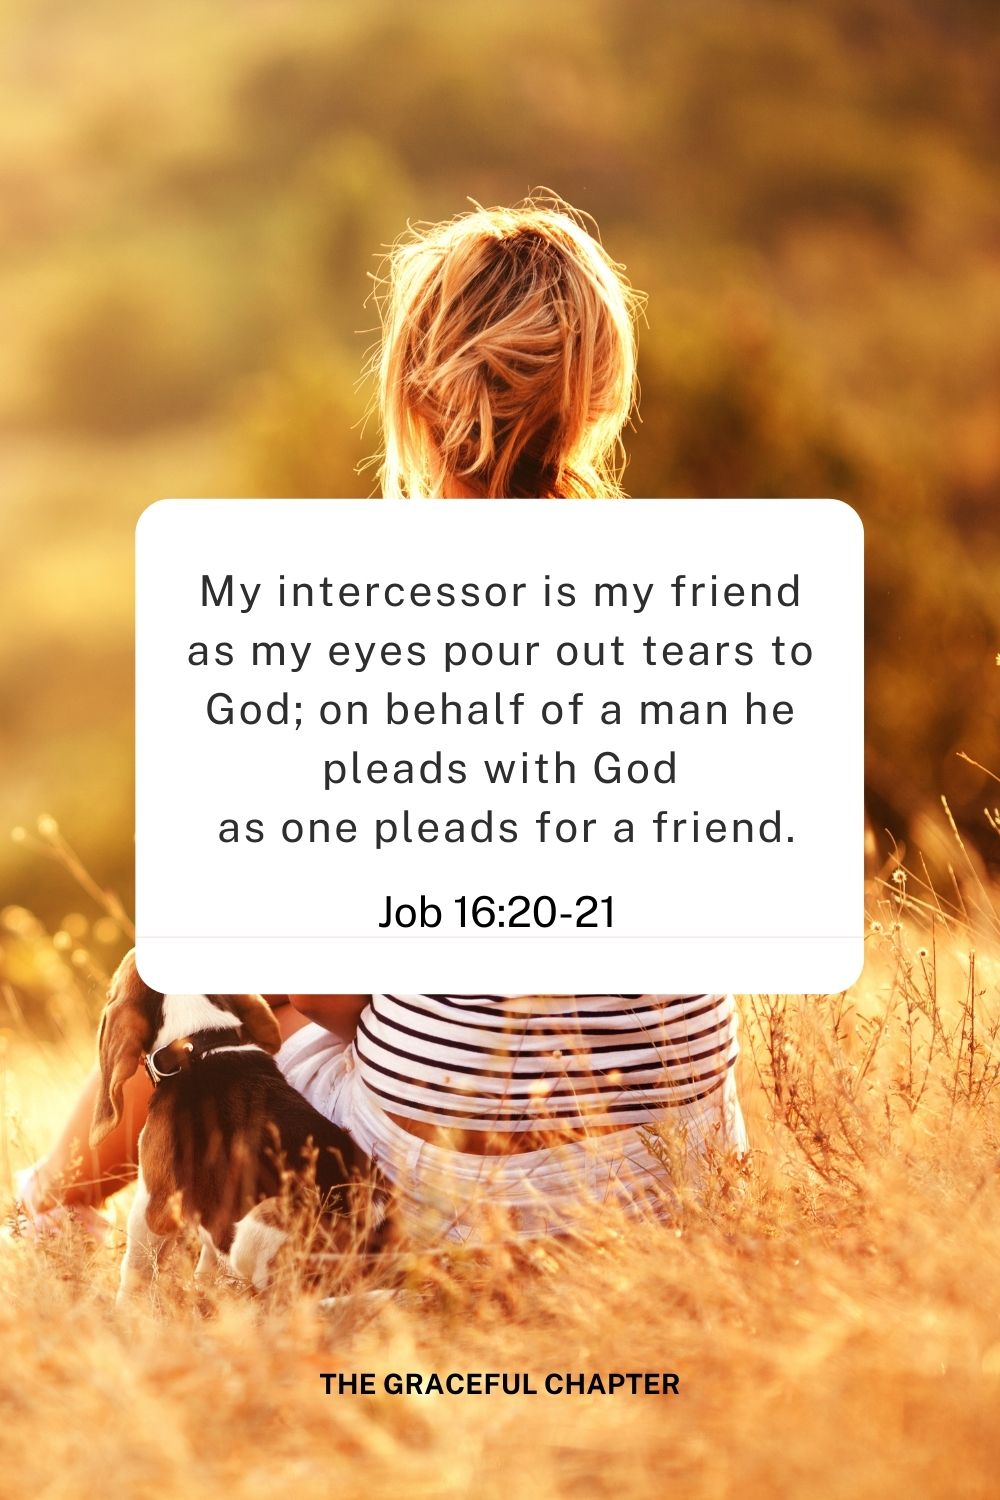 My intercessor is my friend as my eyes pour out tears to God; on behalf of a man he pleads with God  as one pleads for a friend. Job 16:20-21